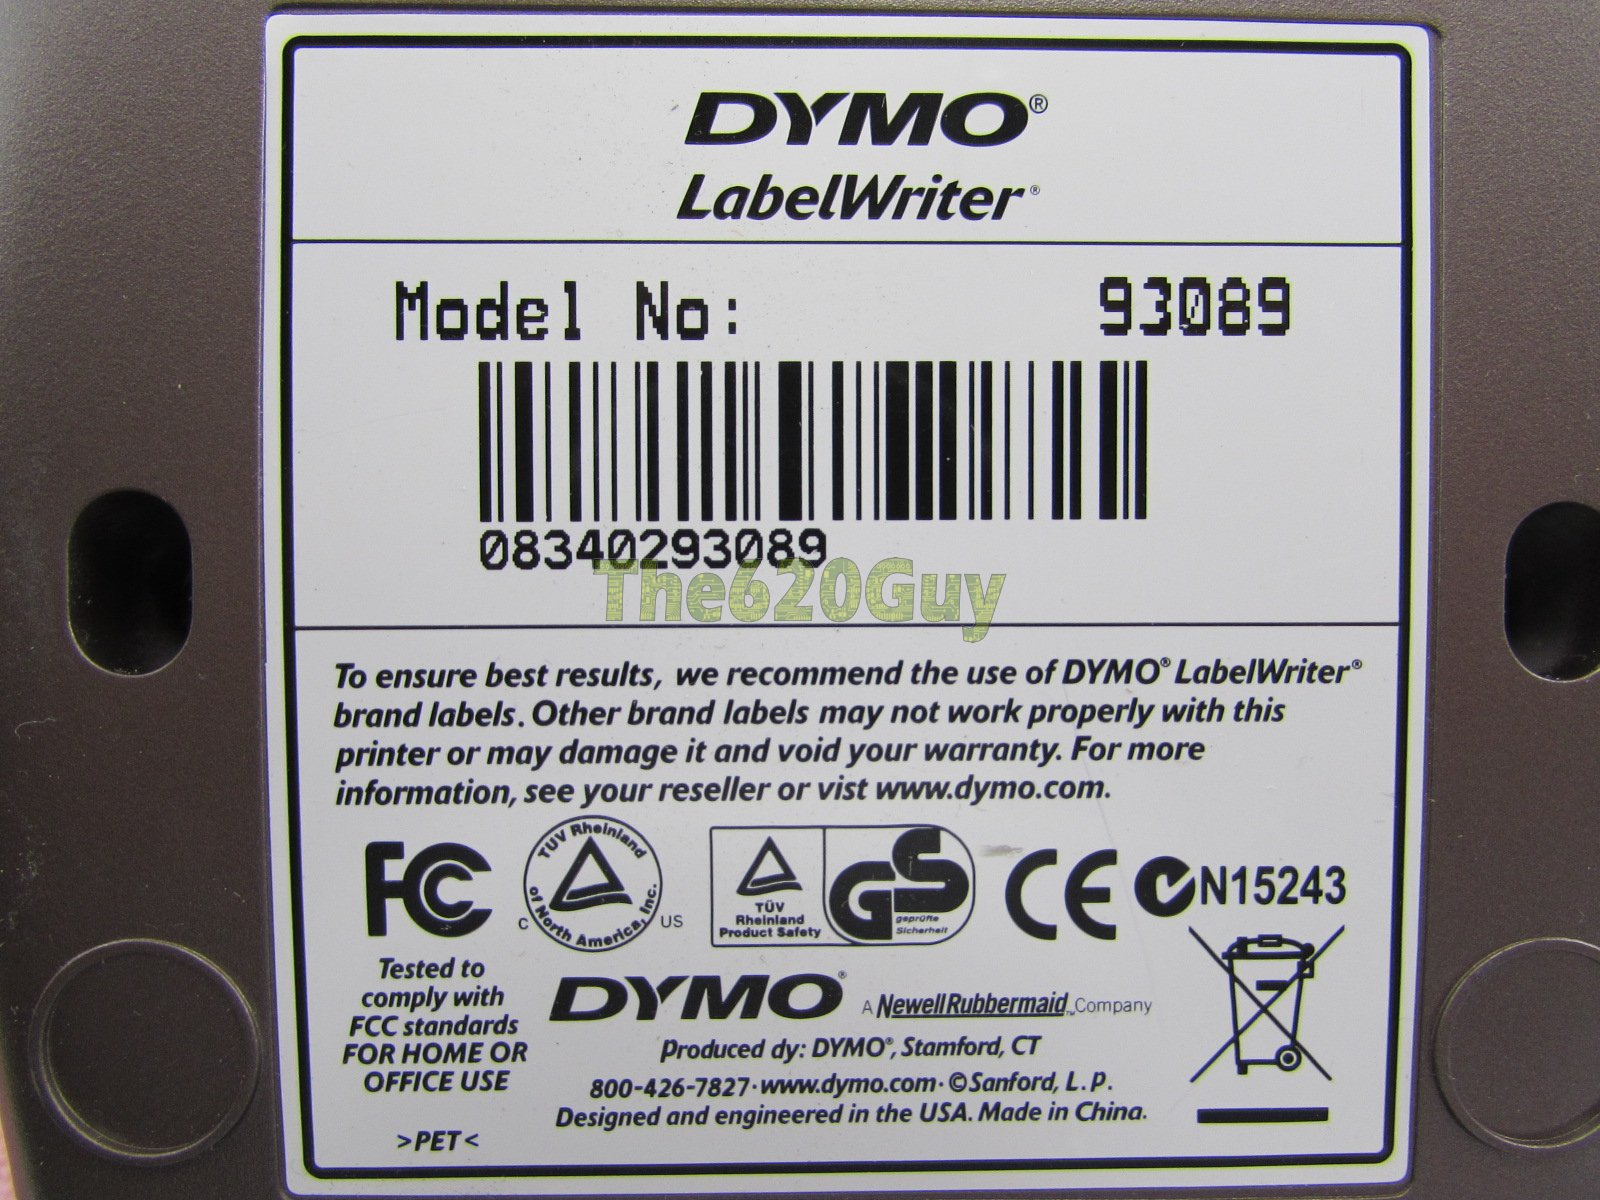 Dymo Labelwriter 400 Labels Dymo Labelwriter 400 Label Writer Printer Pc Mac 93089